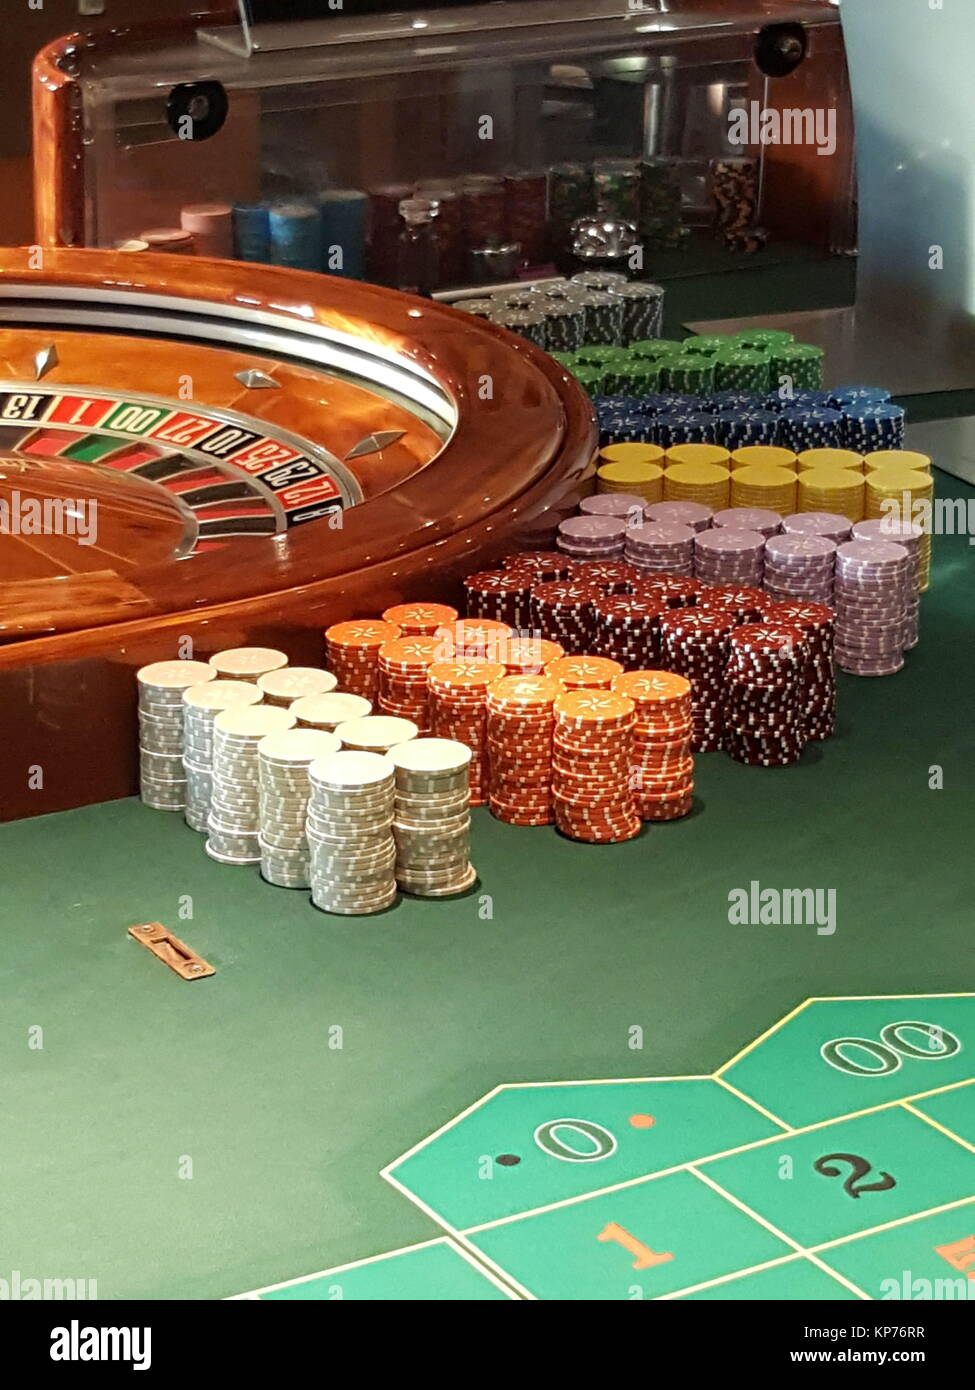 Roulette wheel and chips on a casino table - Stock Image